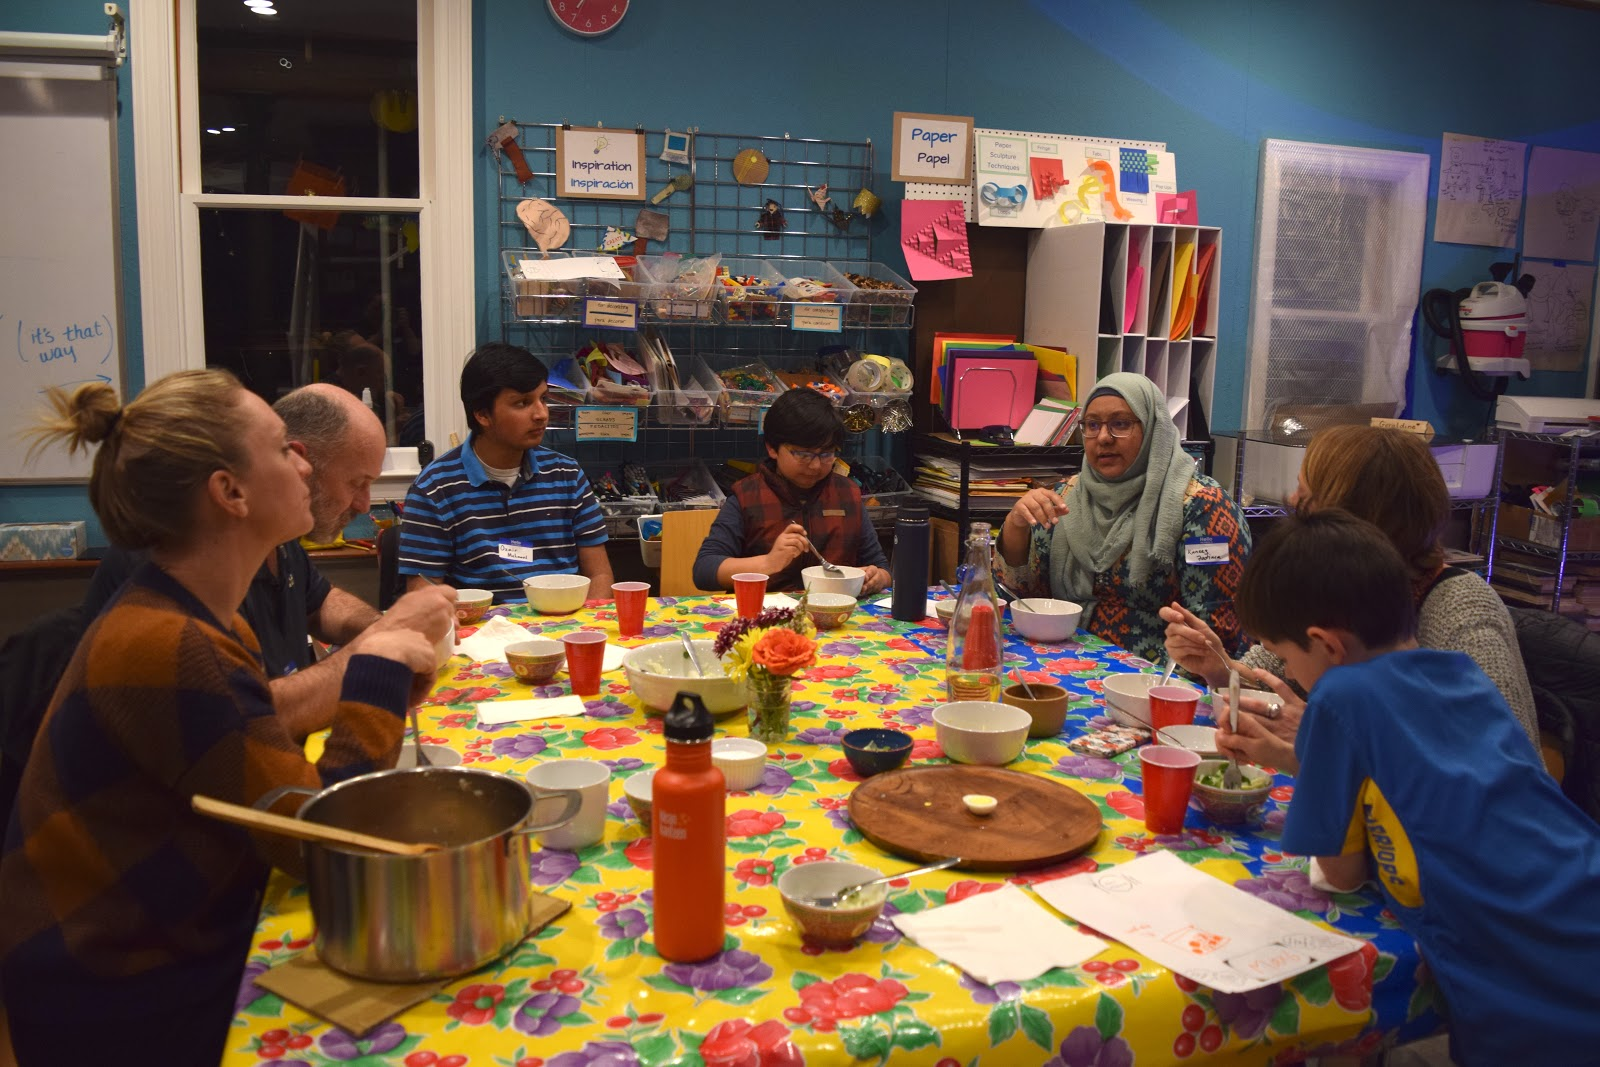 A photograph of a group of people enjoying a meal together at the Maker Ed Community Studio.